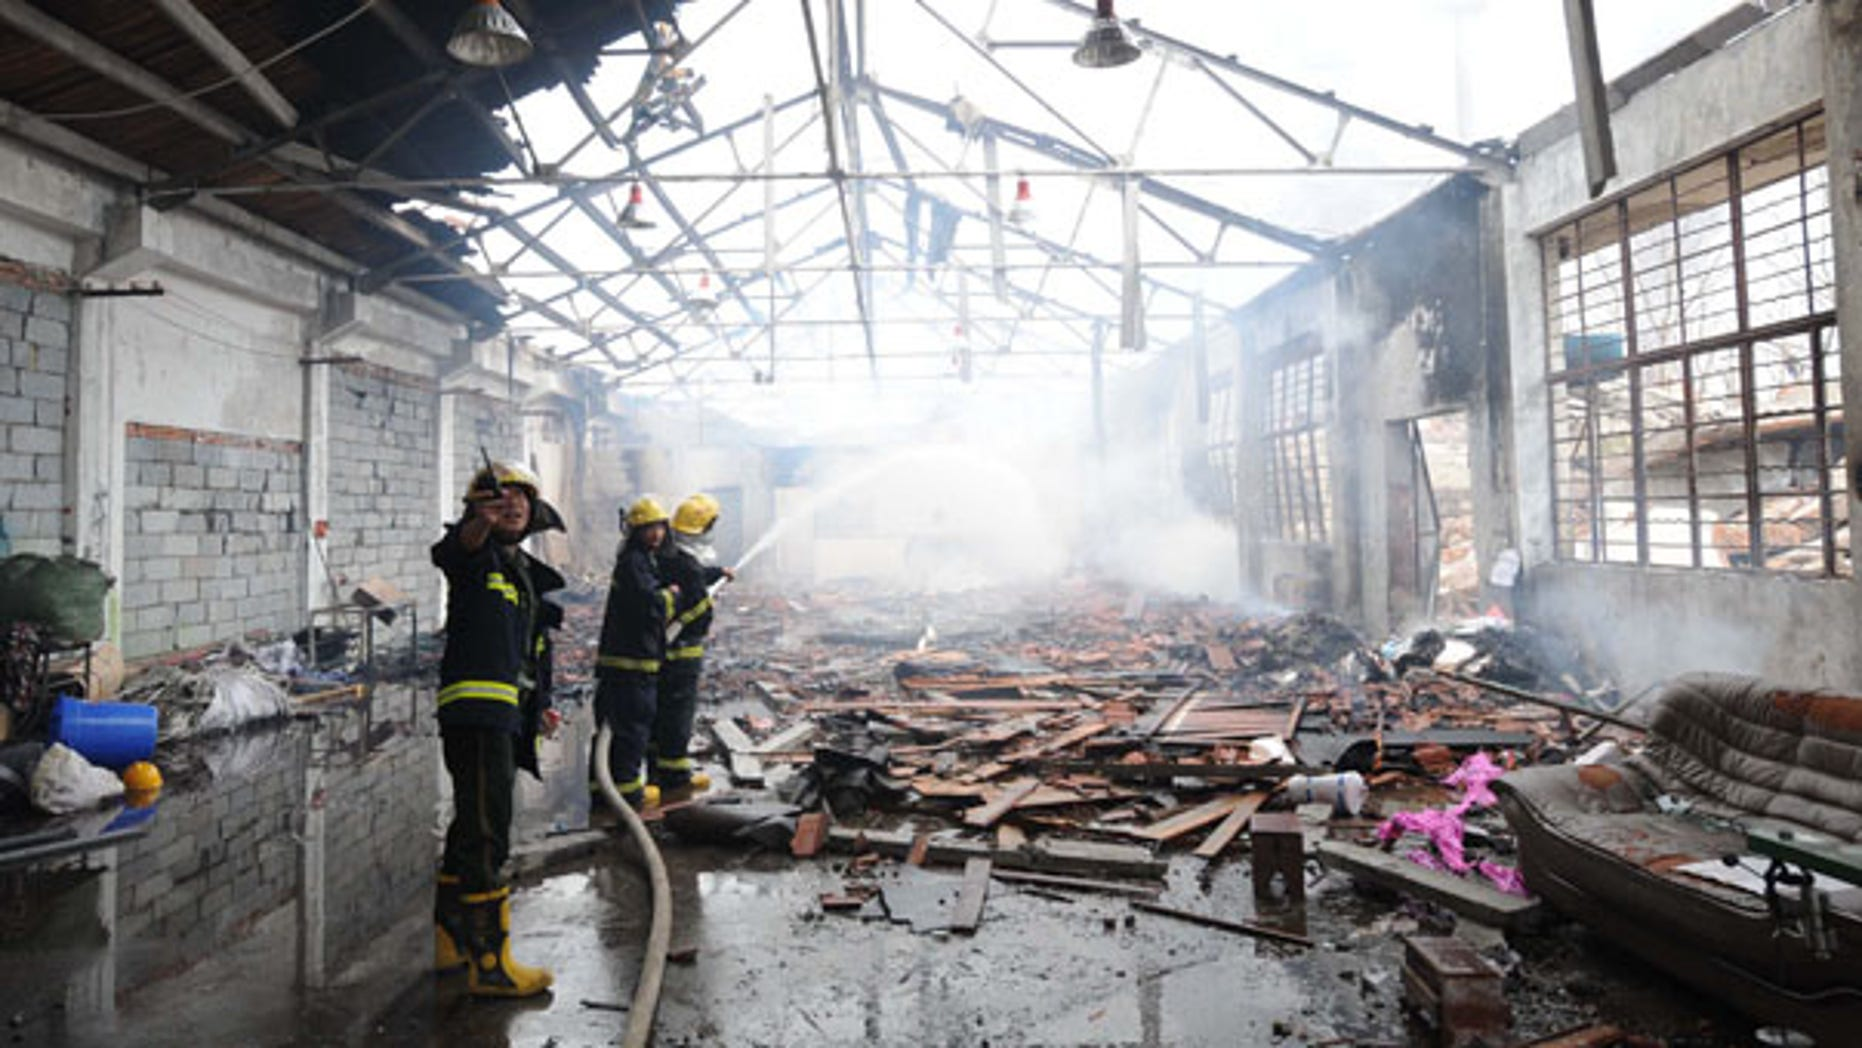 July 28: Firemen put out a fire in Nanjing after a powerful blast caused by a suspected gas leak rocked a plastics factory in eastern China, killing at least 12 people and seriously injuring 28.